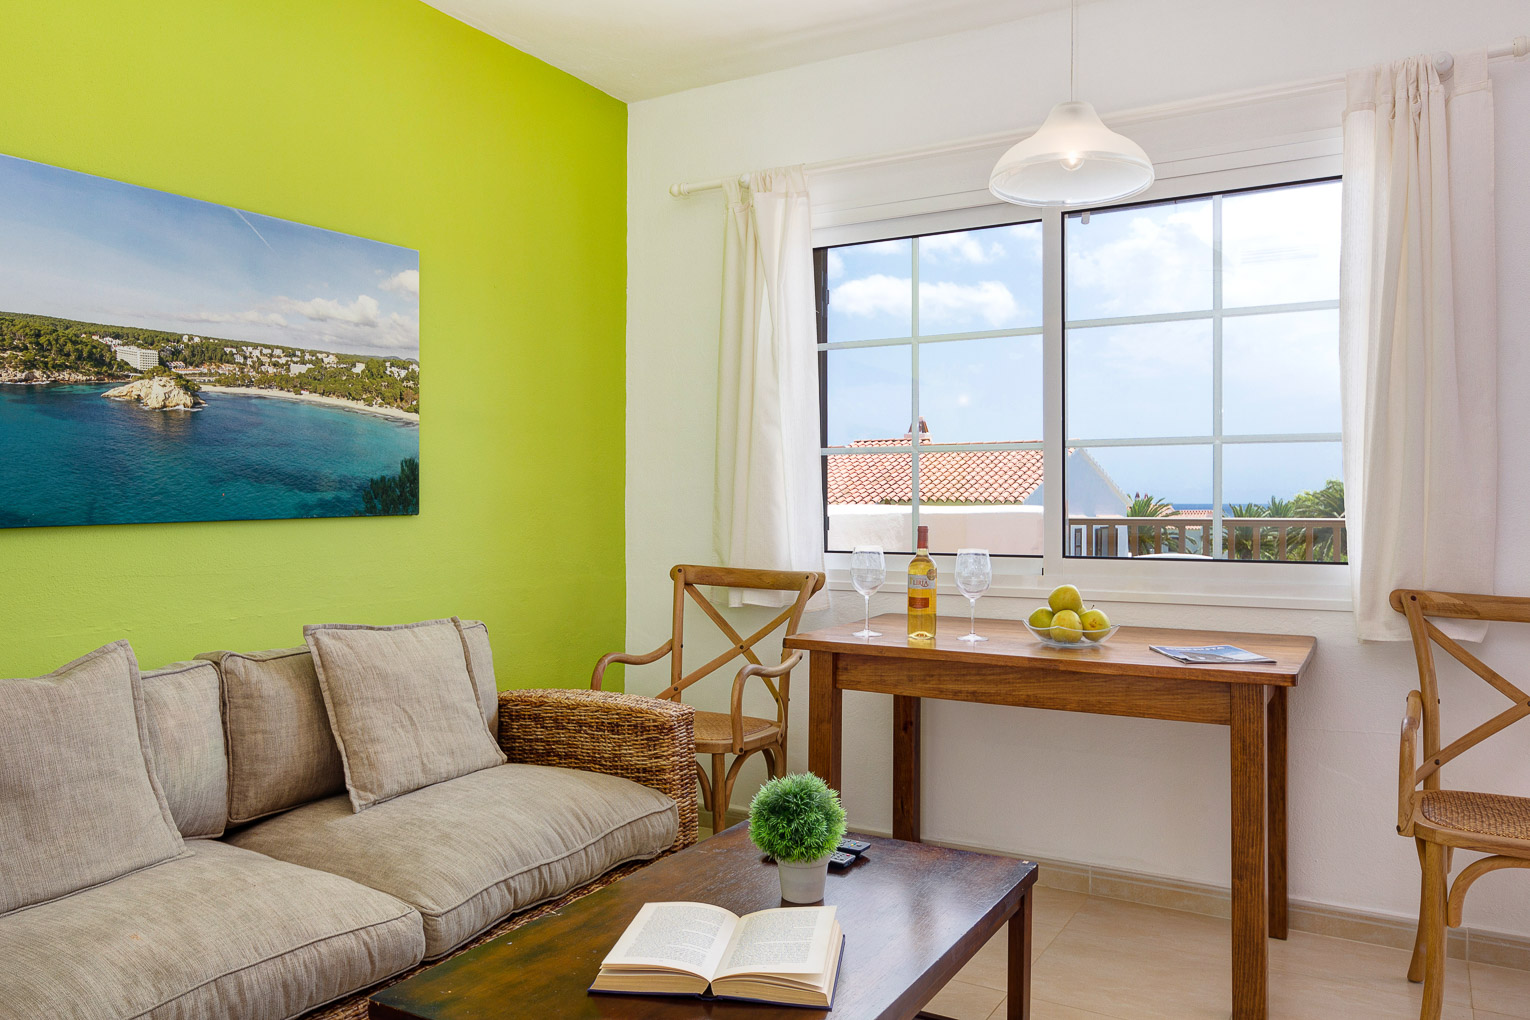 Son Bou Playa Apartments (2 bedroom) Picture 13